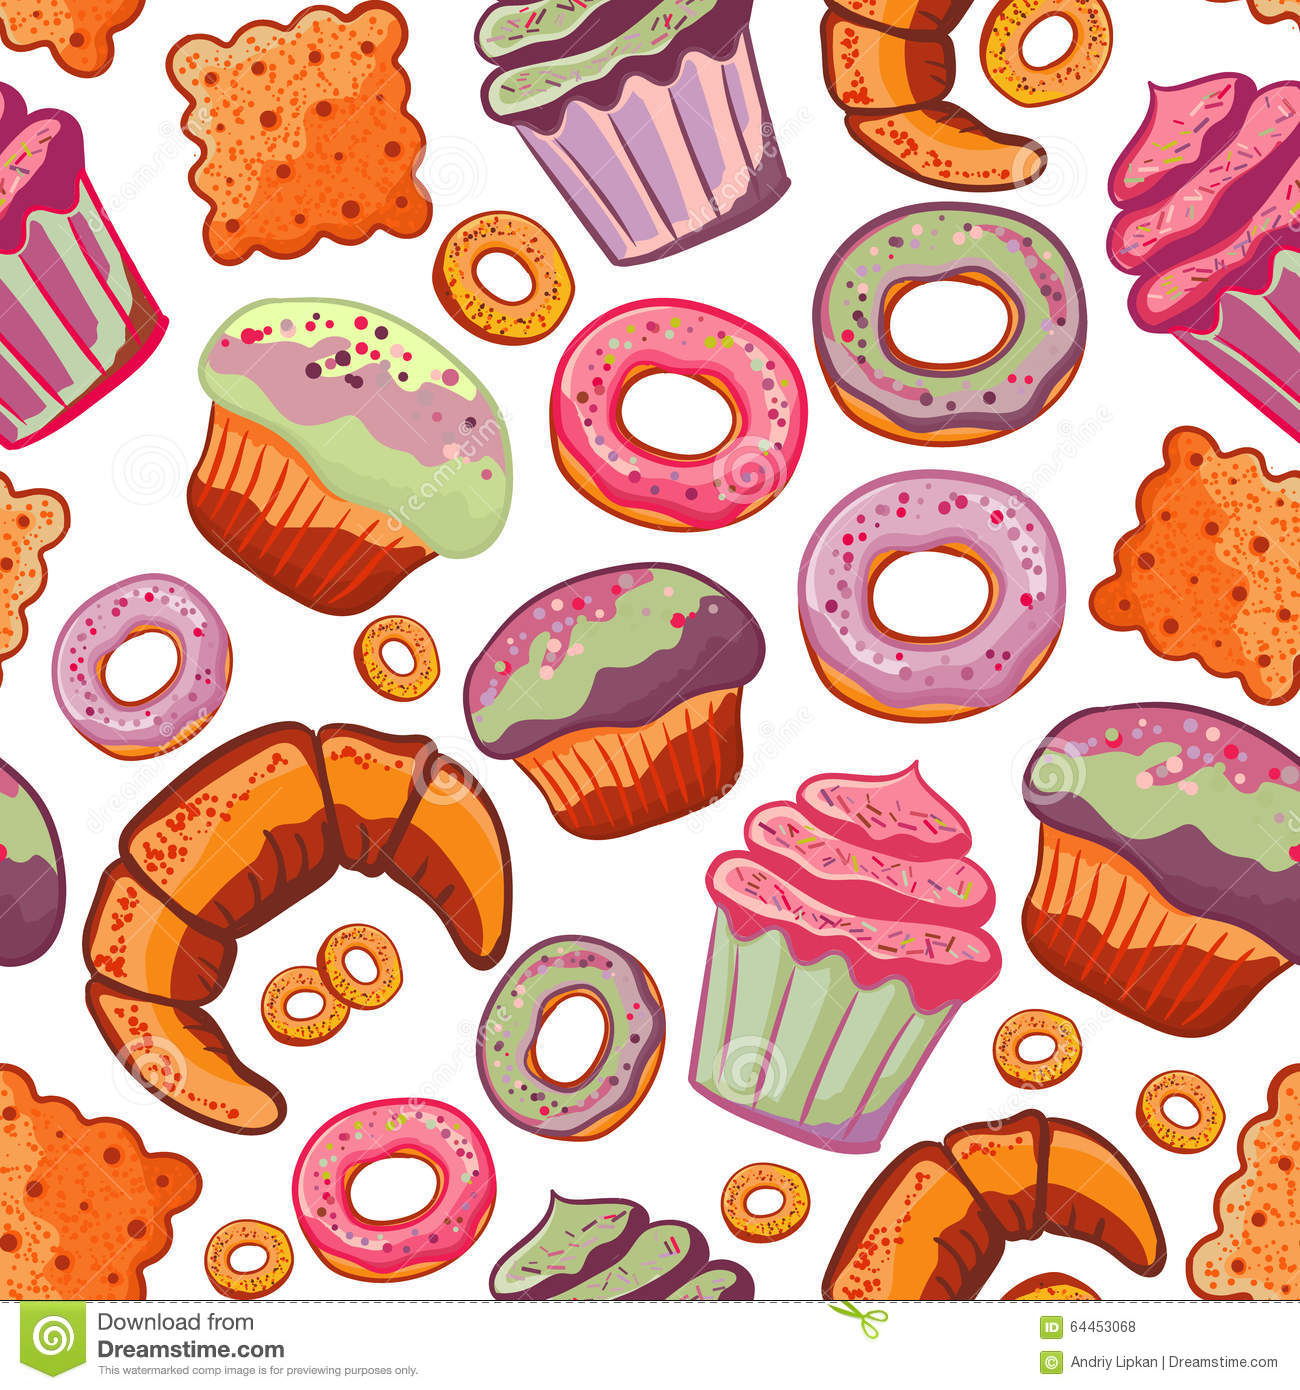 Baked Goods Clipart Group with 53+ items.